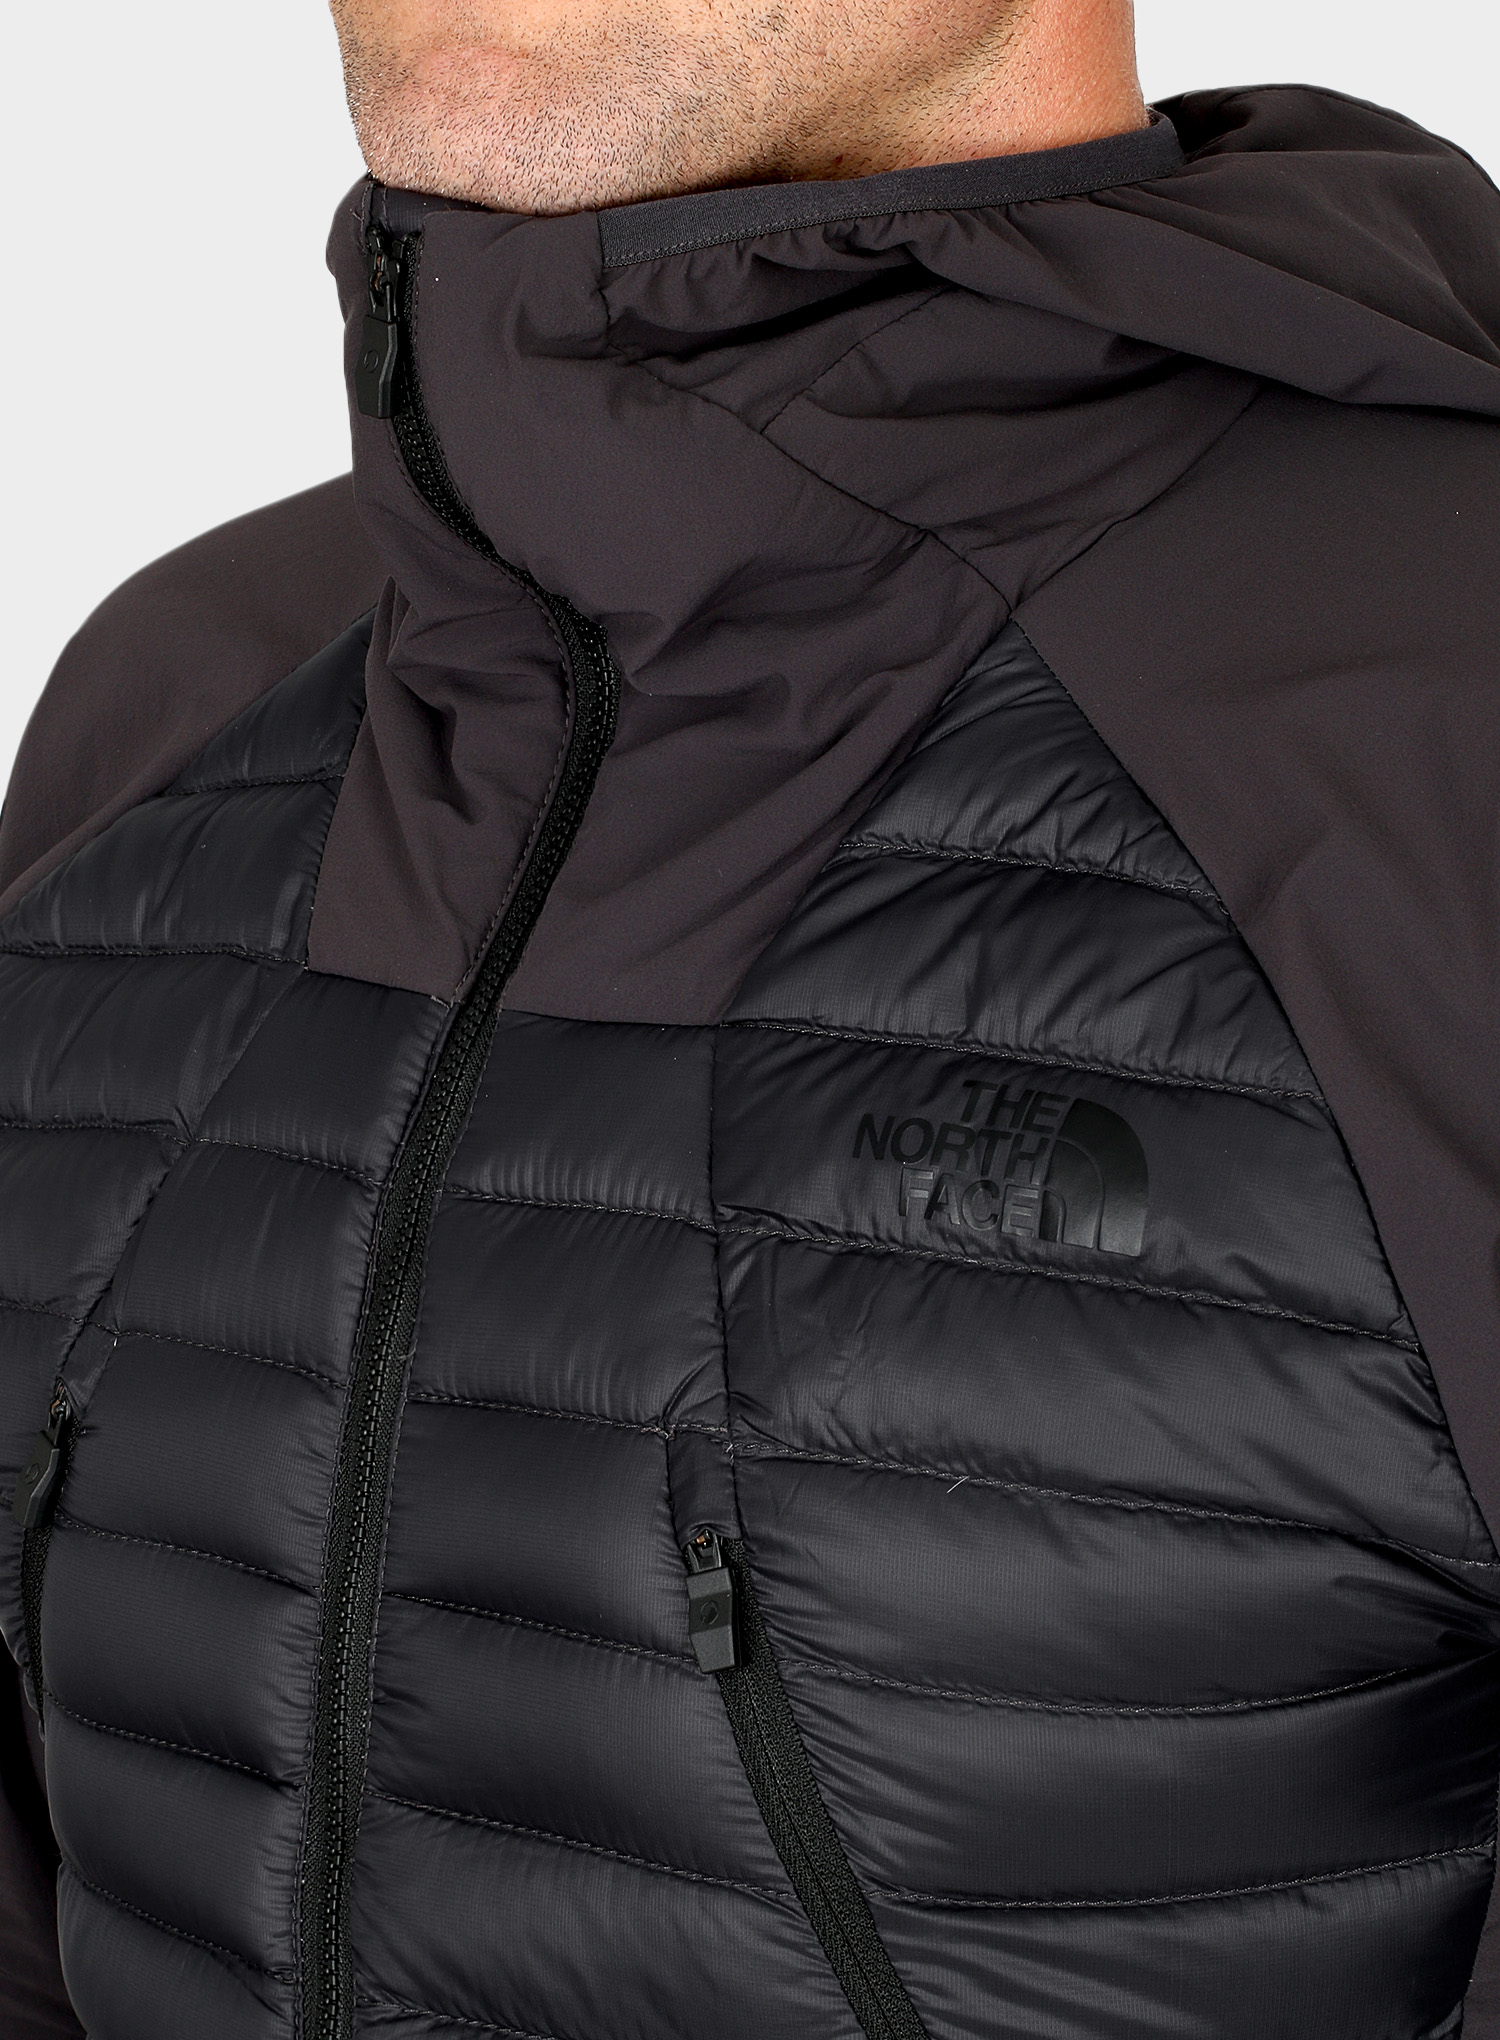 Kurtka puchowa The North Face Unlimited Jacket - weathered black - zdjęcie nr. 5